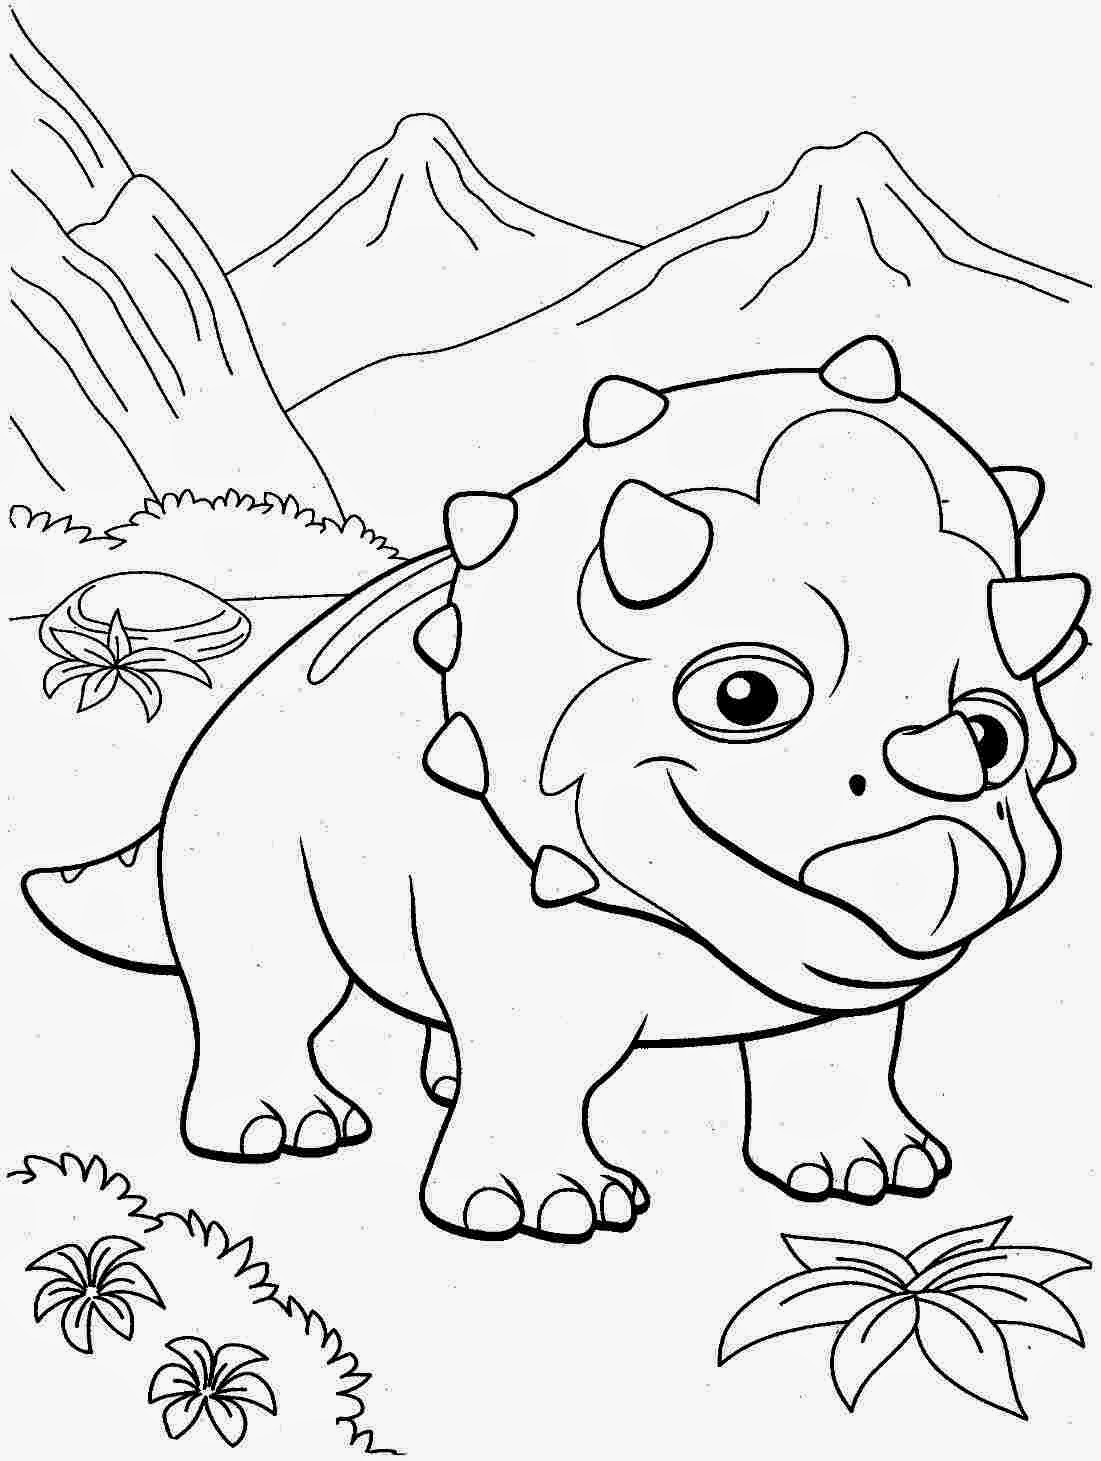 dinosaurs color pages dinosaur coloring pages 2018 dr odd pages color dinosaurs